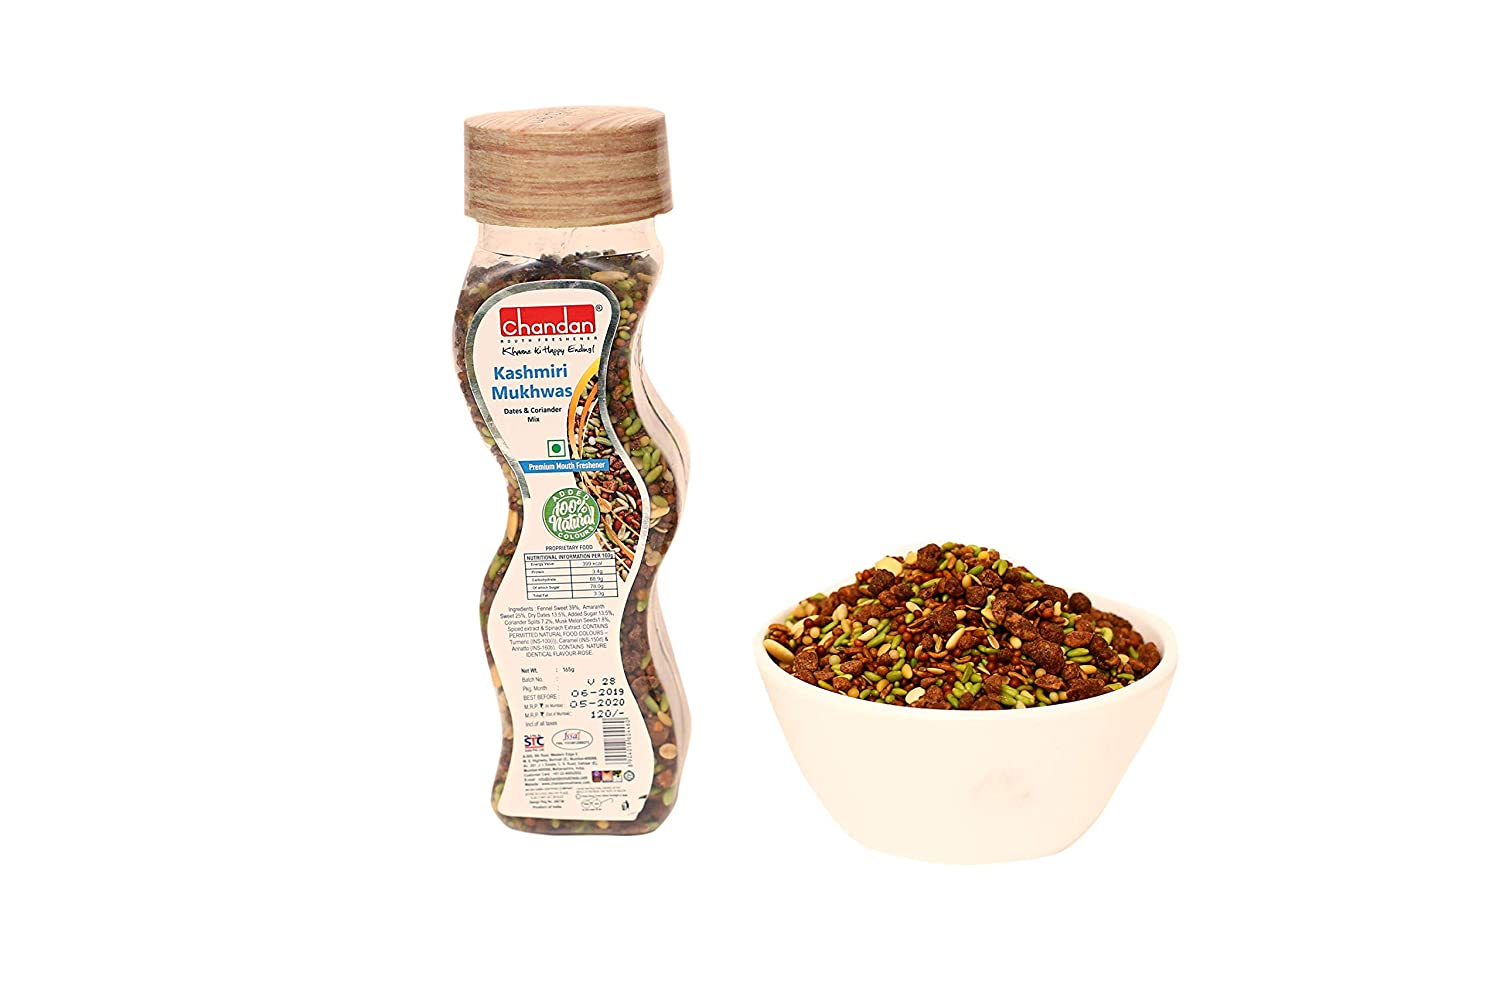 Chandan Kashmiri Mukhwas Mouth Freshener Coriande and Max 47% OFF Dates with Cheap